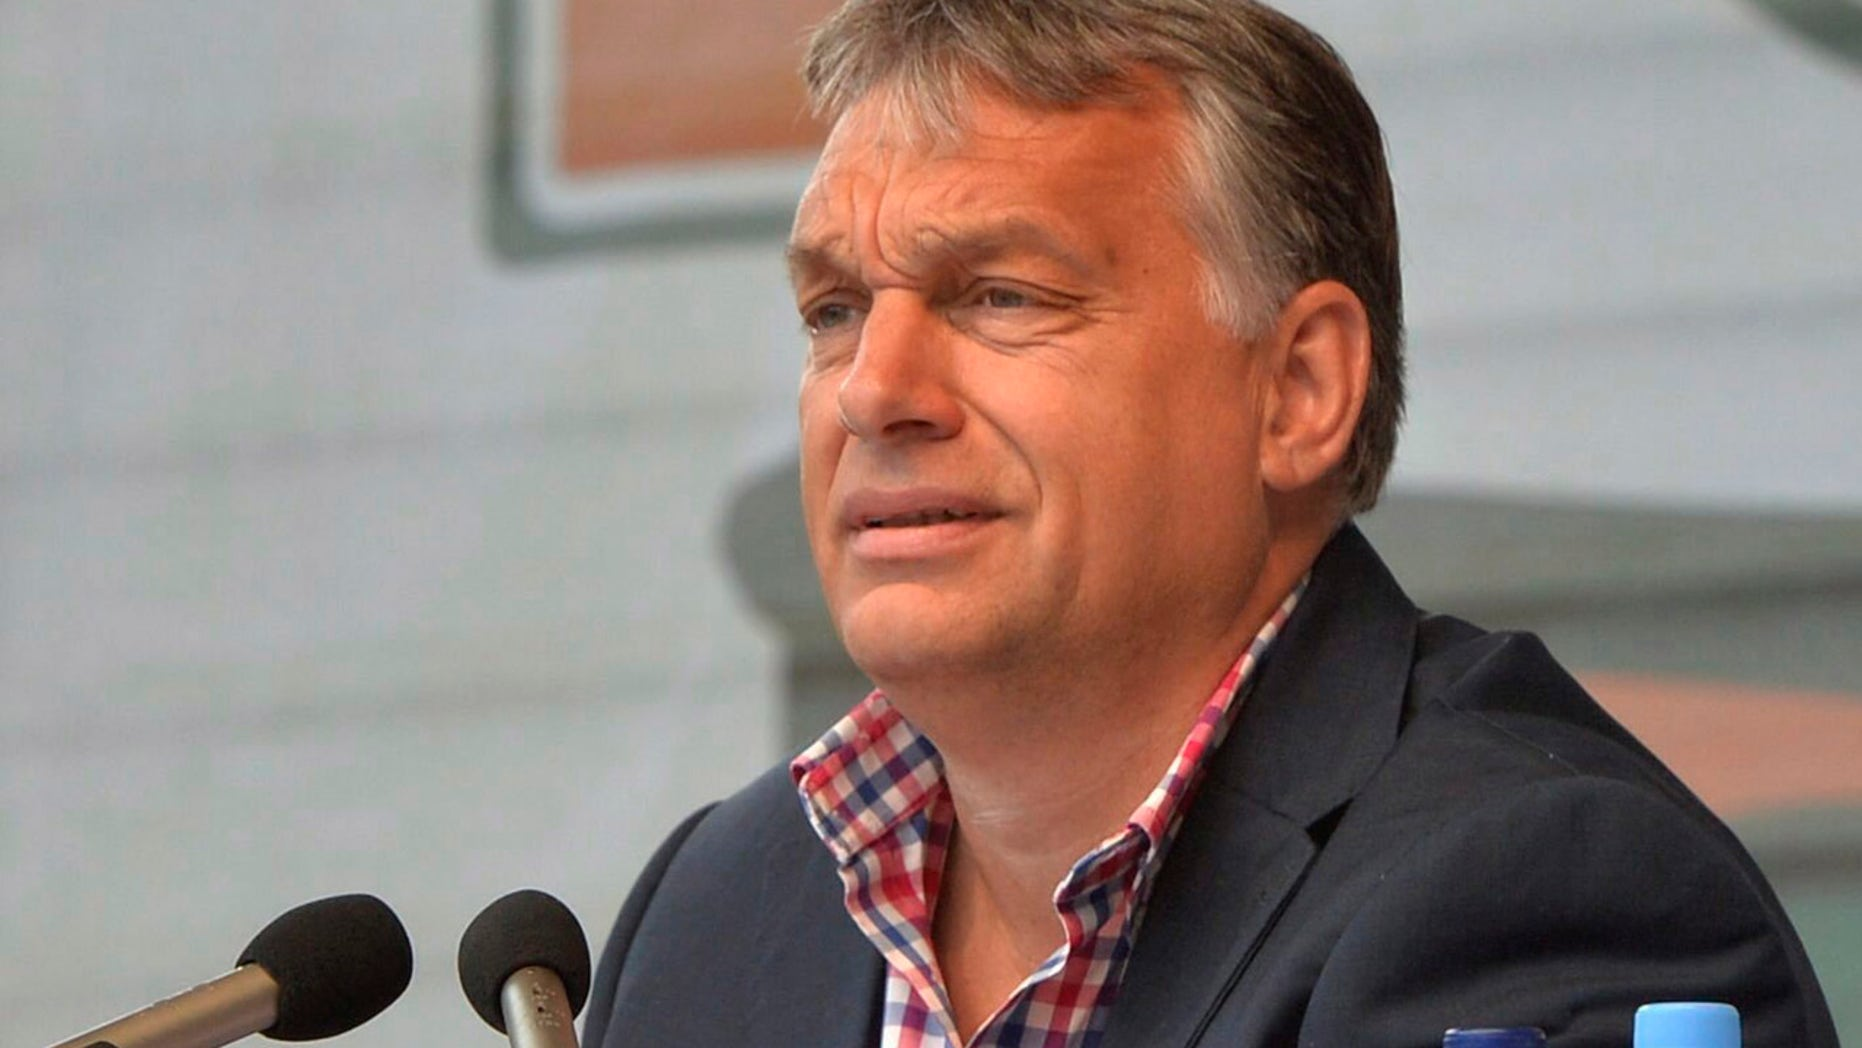 July 23, 2016: Hungarian Prime Minister Viktor Orban delivers his speech during the 27th Balvanyos Summer University and Students' Camp in Baile Tusnad, Romania.